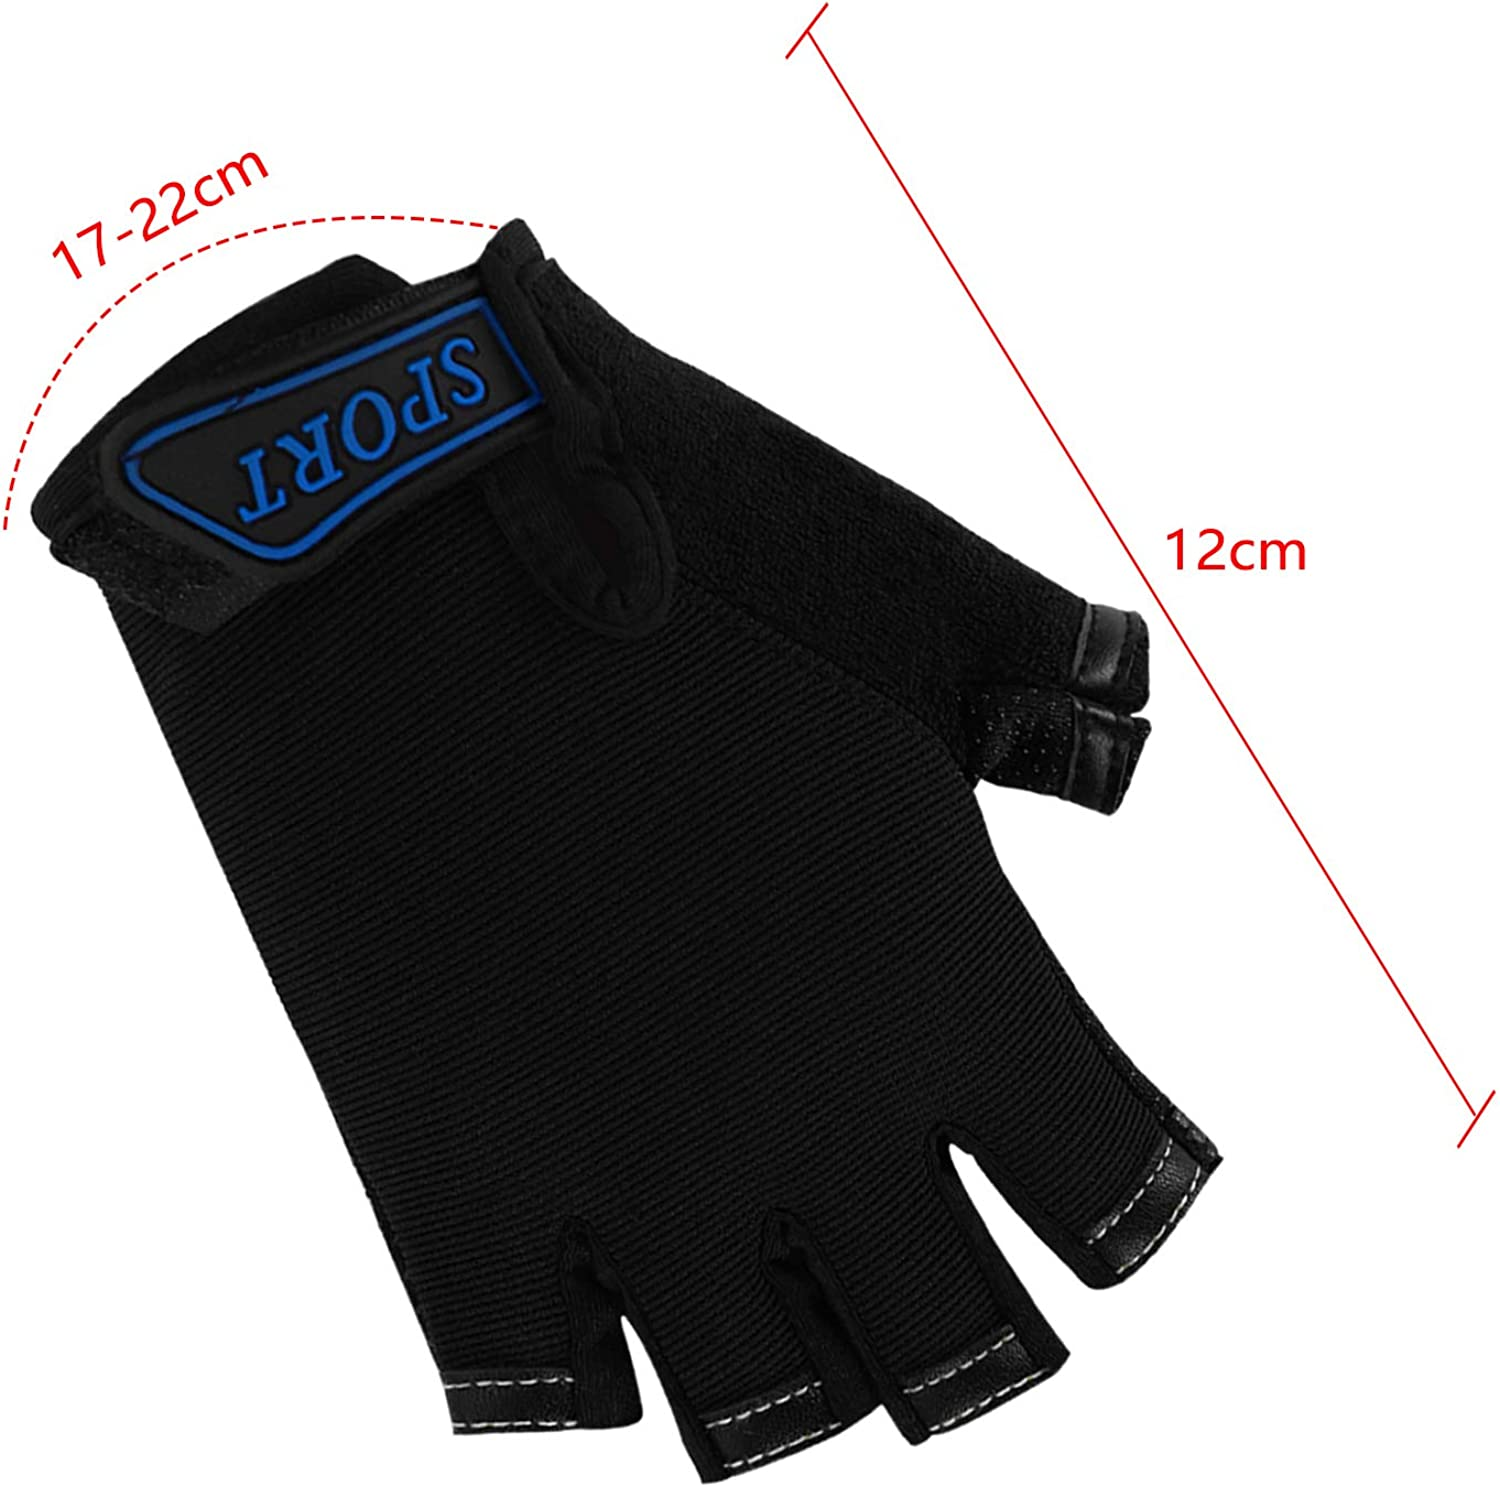 IPENNY Girls Boys Half Finger Cycling Gloves Sport Gym Gloves Racing/ Mitts Non-Slip Gel Short Finger Breathable Summer Gloves Mountain Road Bike Riding Bicycle Running/ Gloves